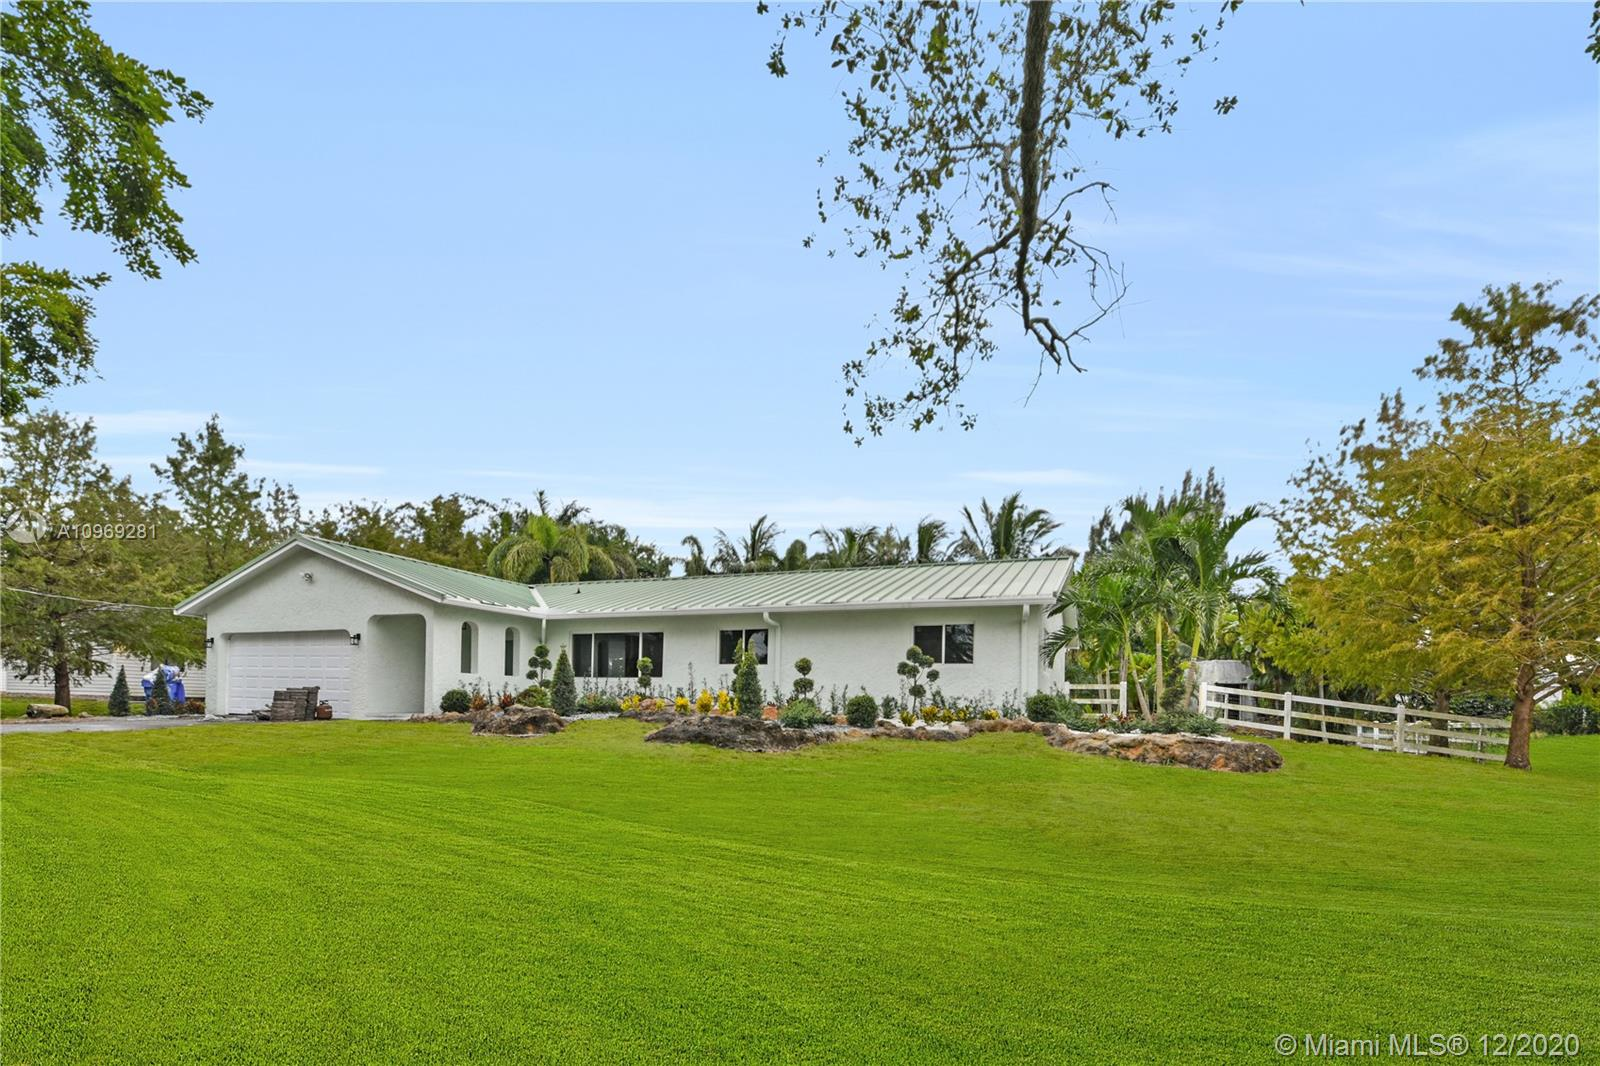 5031 SW 170th Ave, Southwest Ranches, Florida 33331